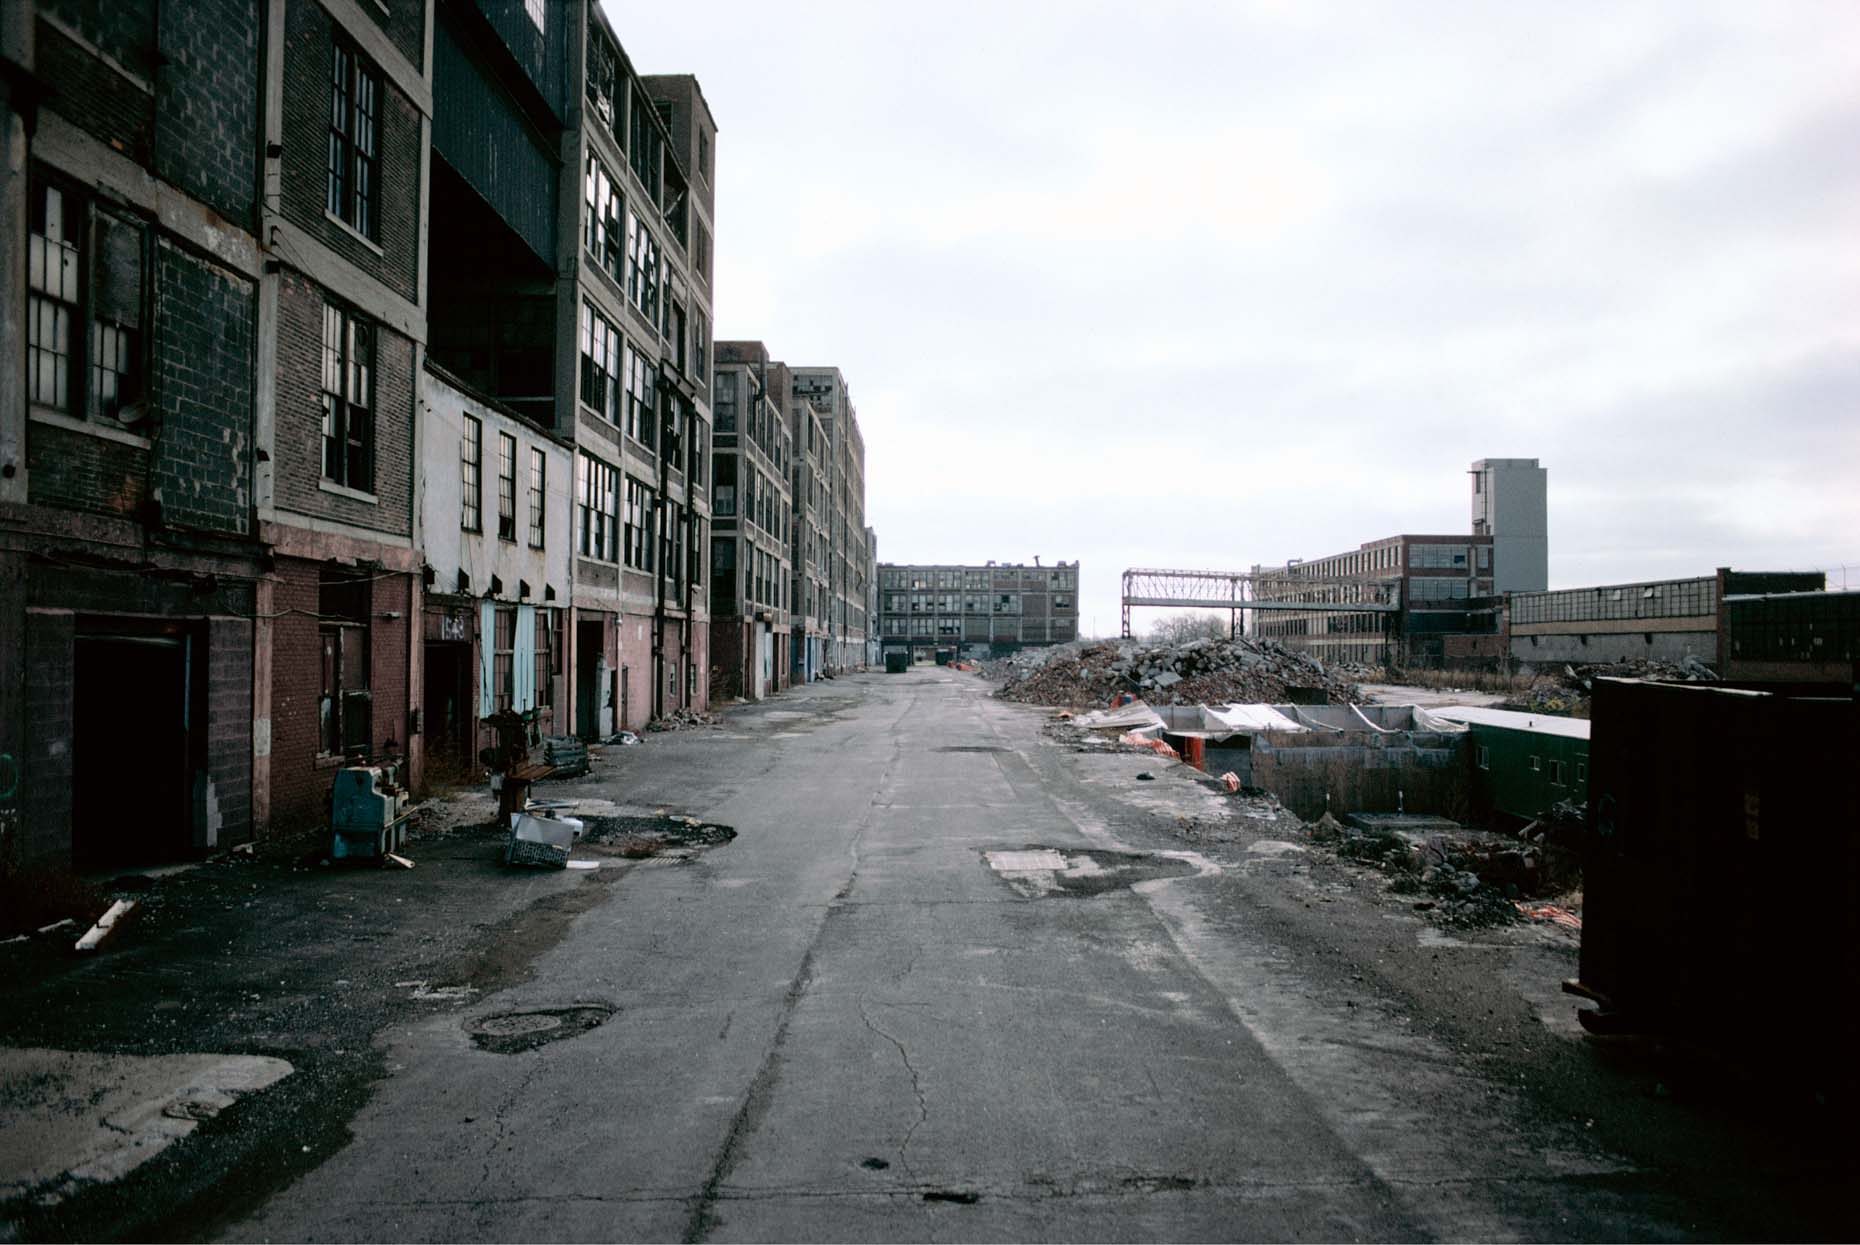 10_Former Packard Plant, East Grand Ave at Concord, Detroit, 1999_-DUP.jpg